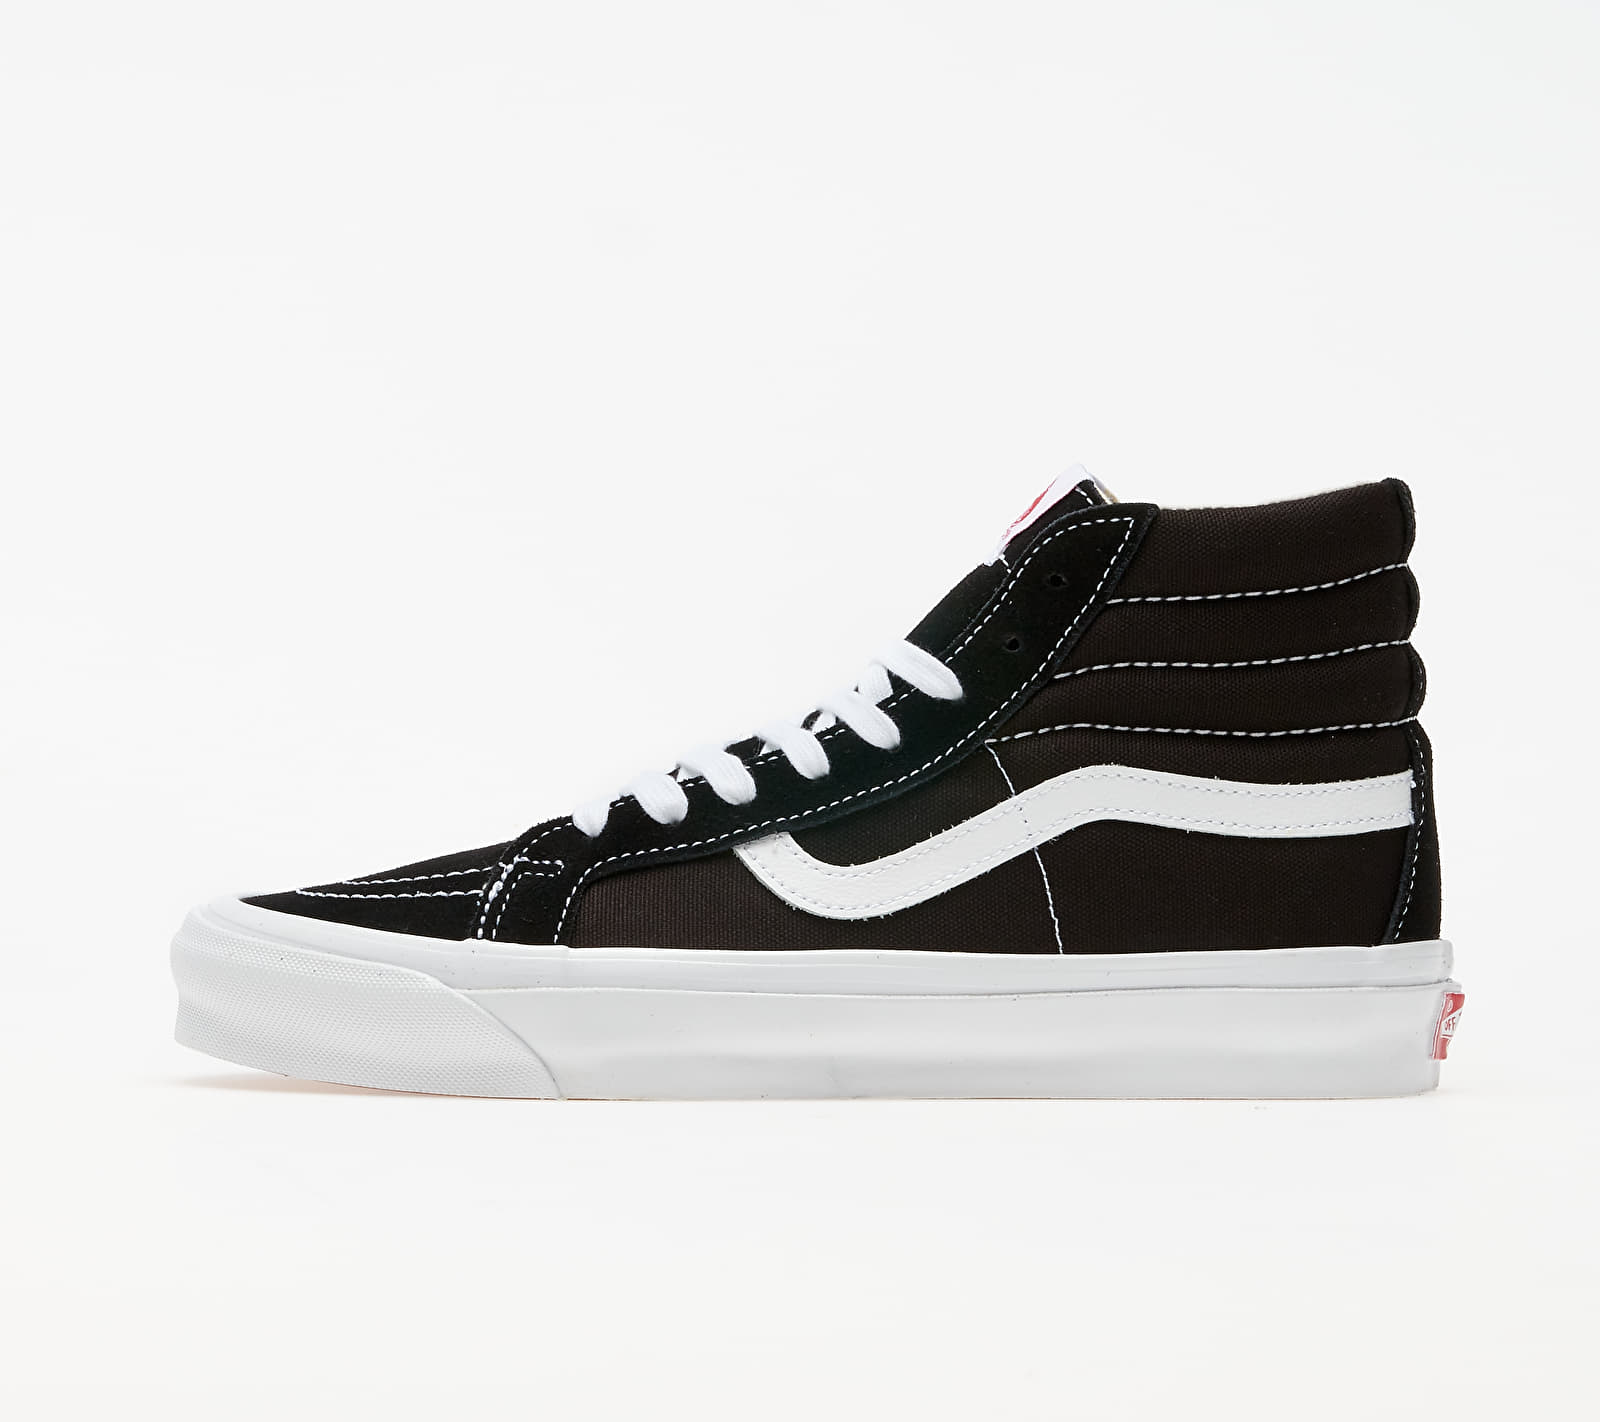 Vans Vault OG Sk8-Hi LX (Suede/ Canvas) Black/ True White EUR 44